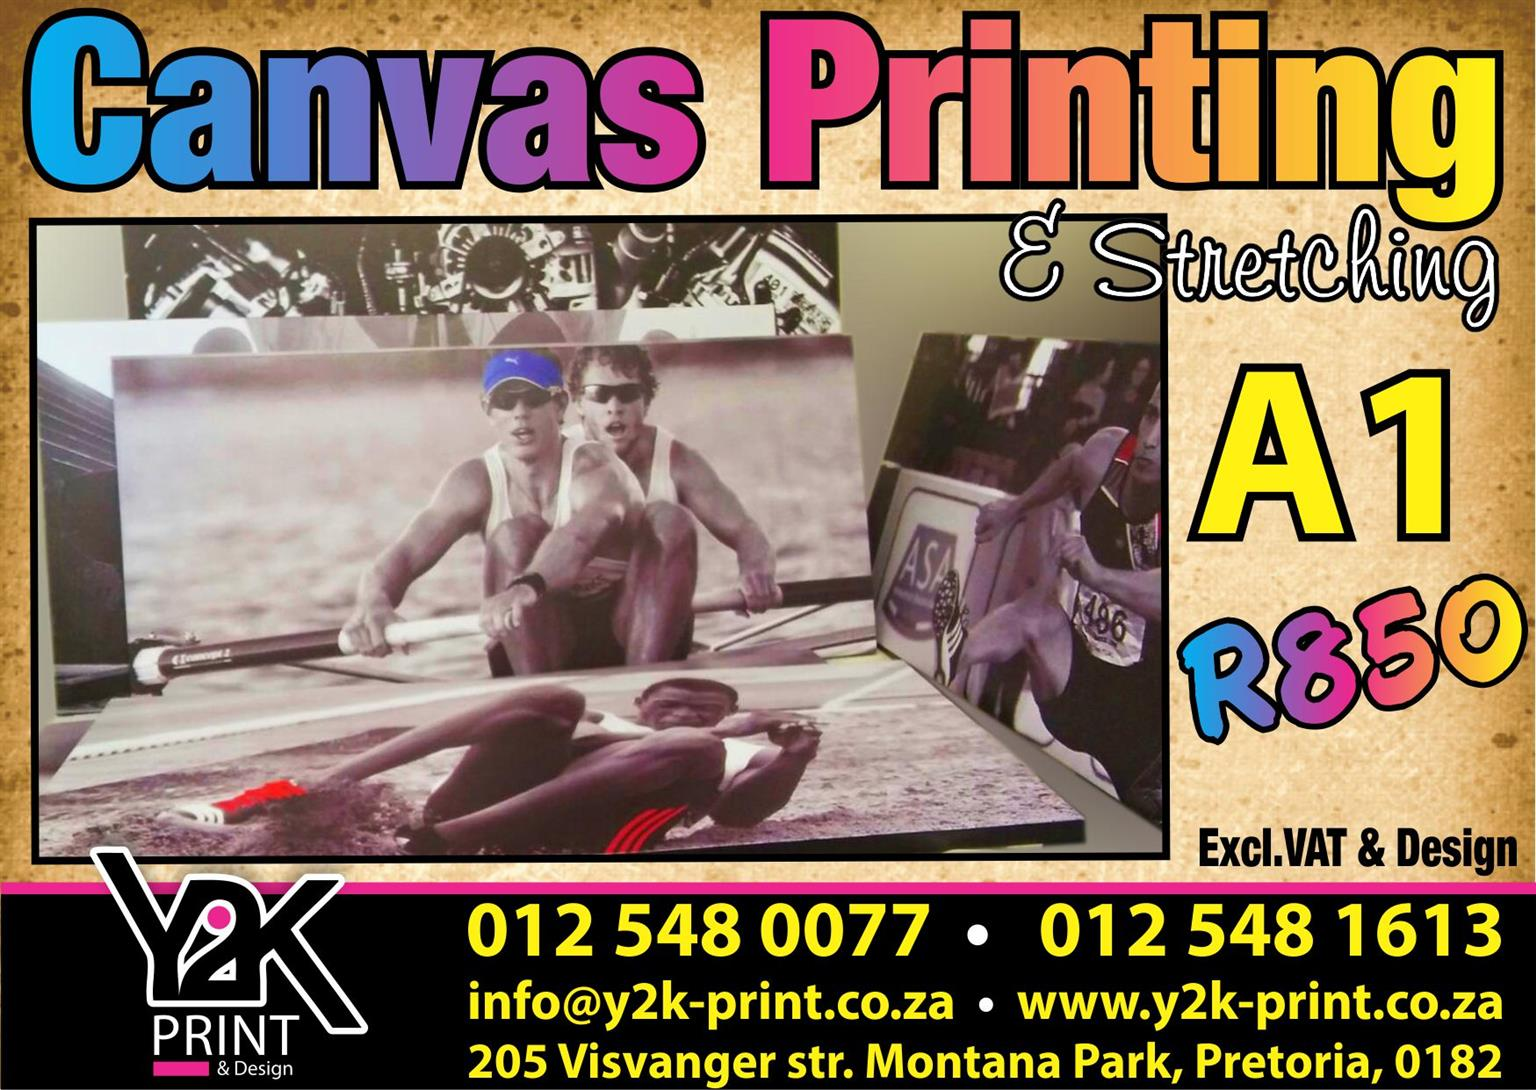 A1 Canvas printing